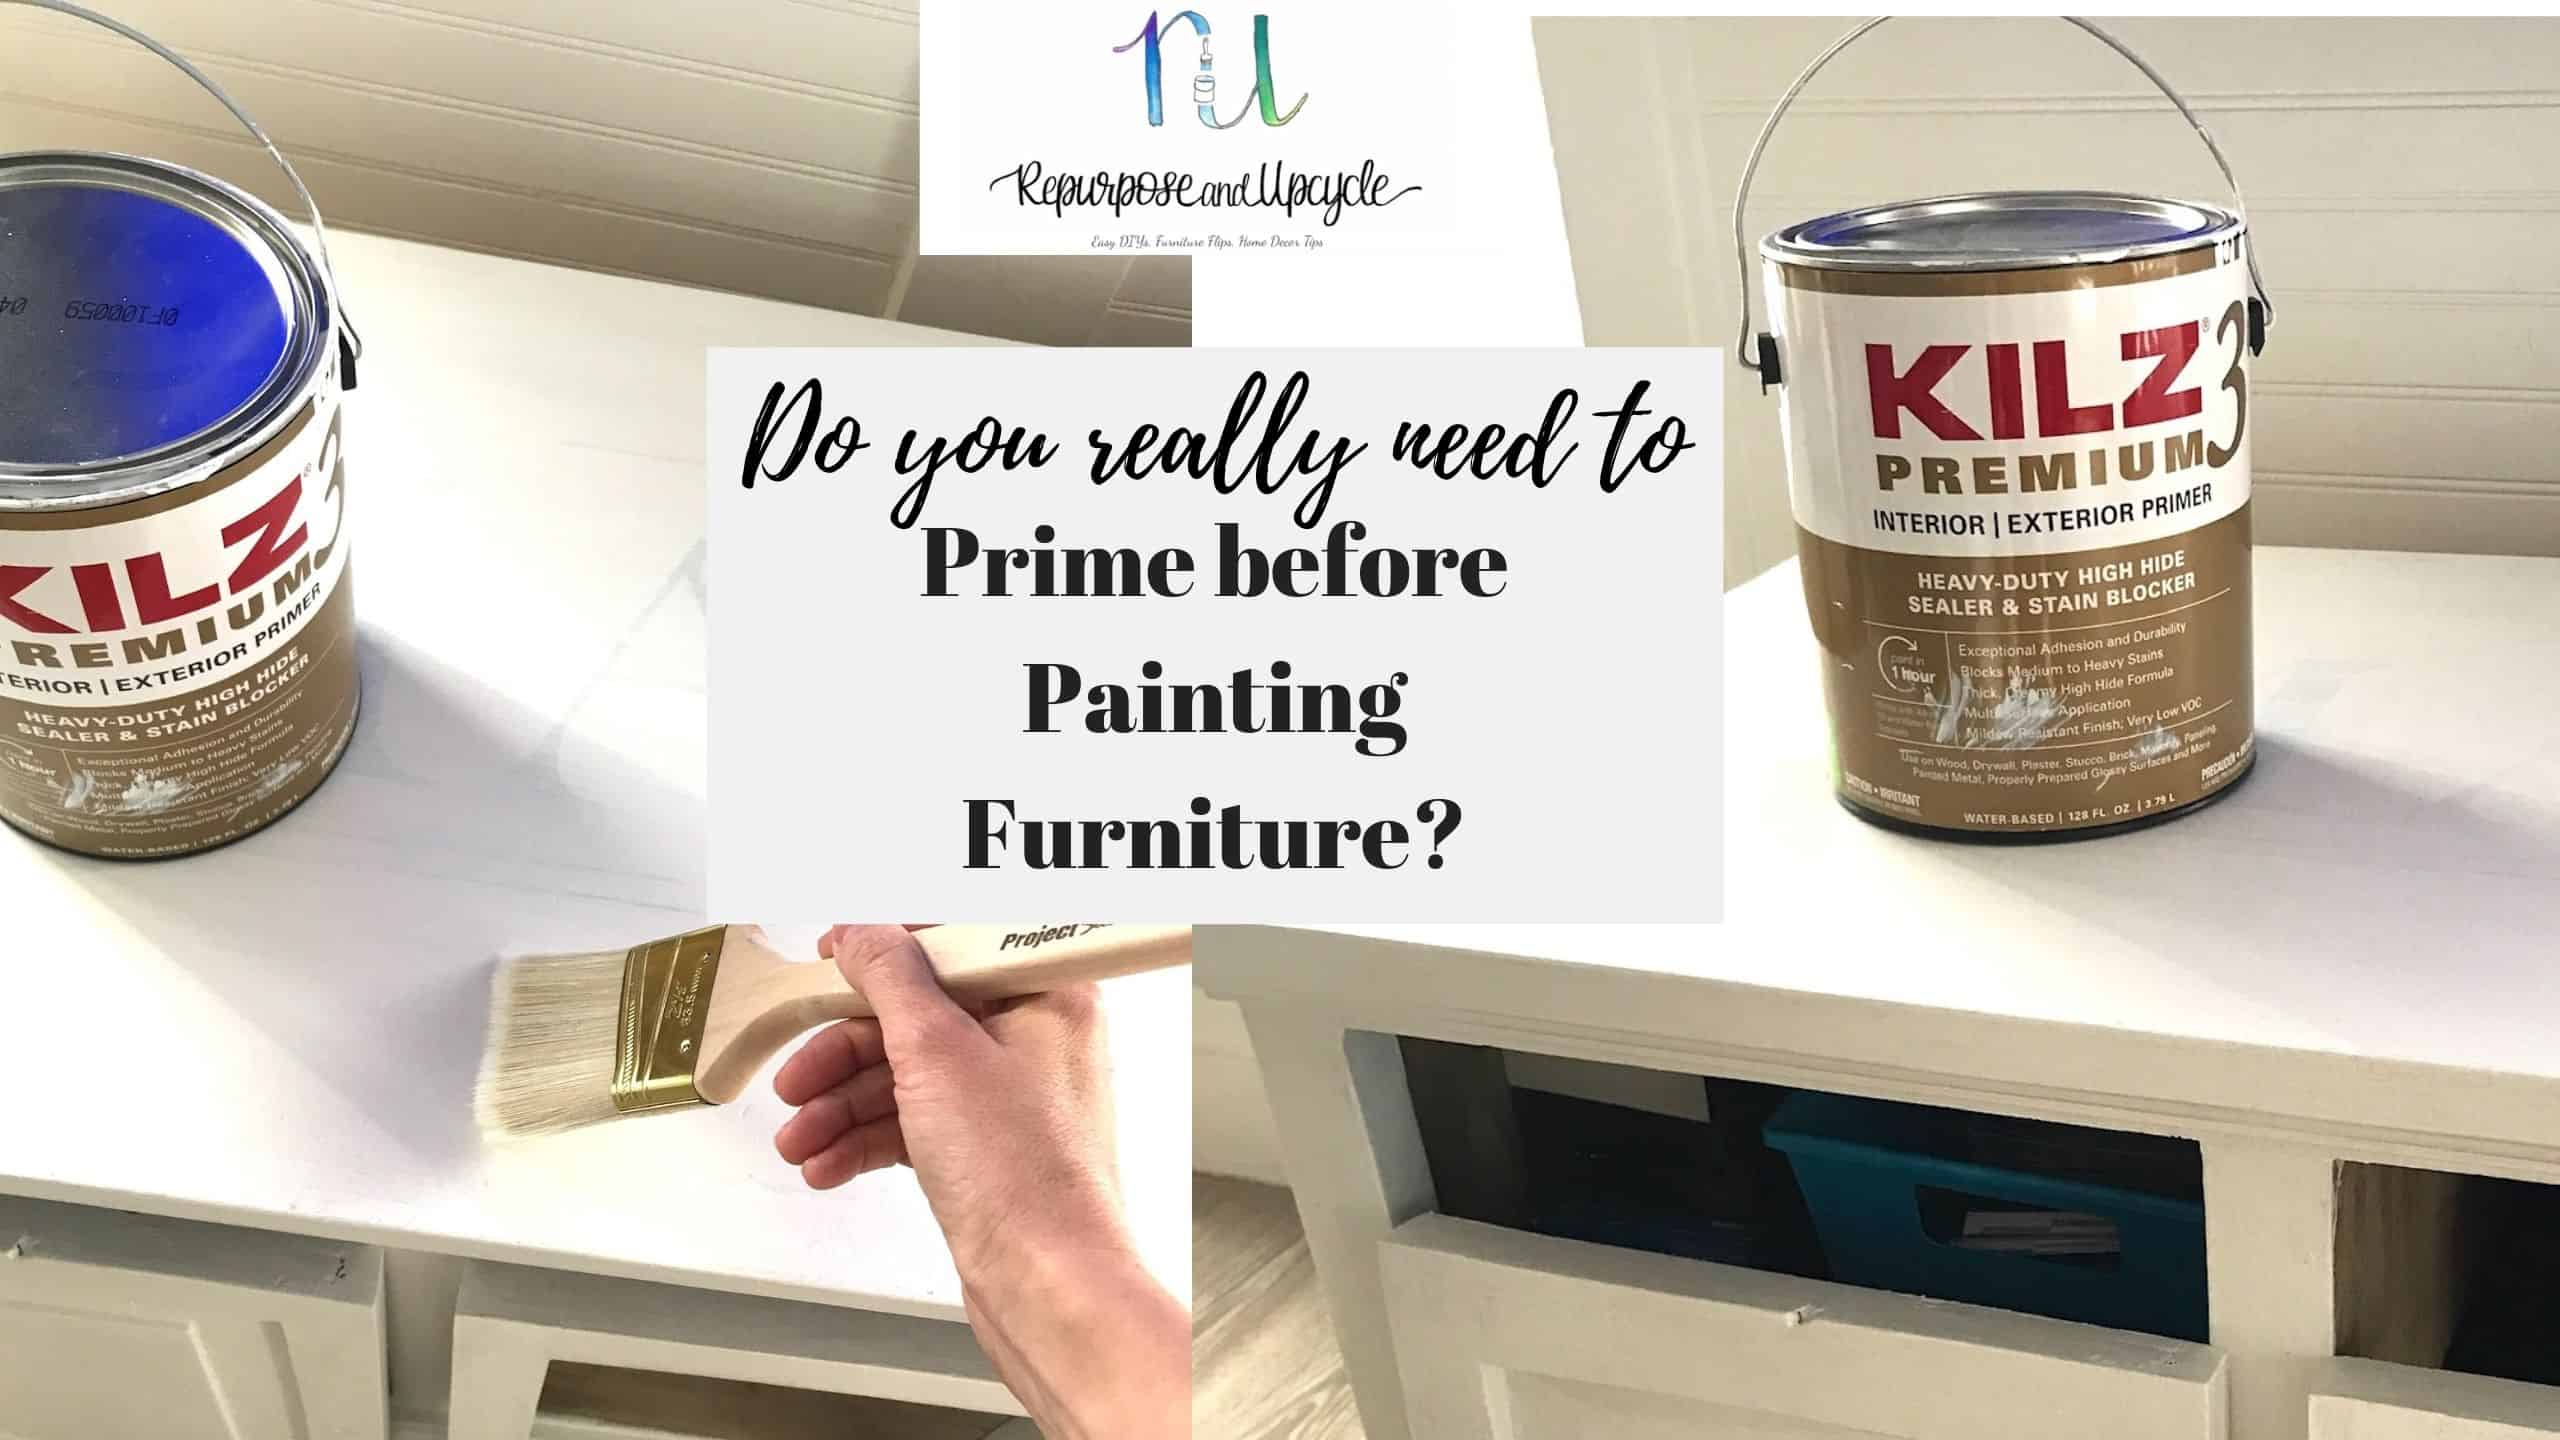 do you need to prime before painting furniture?